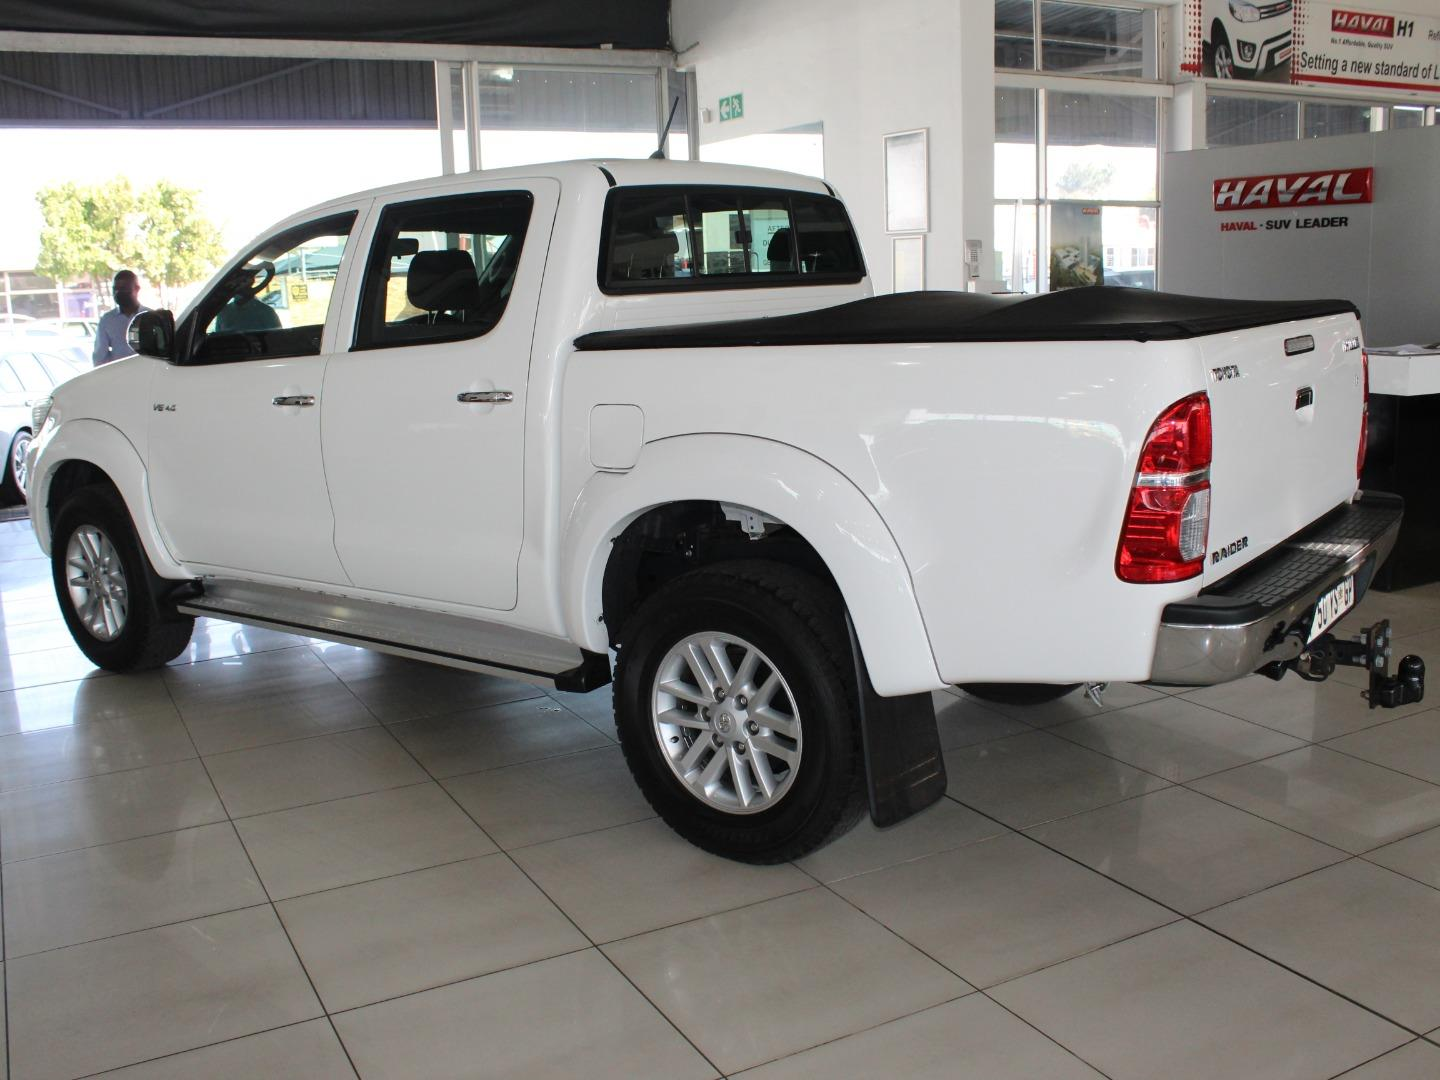 2014 Toyota Hilux 4.0 V6 Double Cab Raider- Picture 6